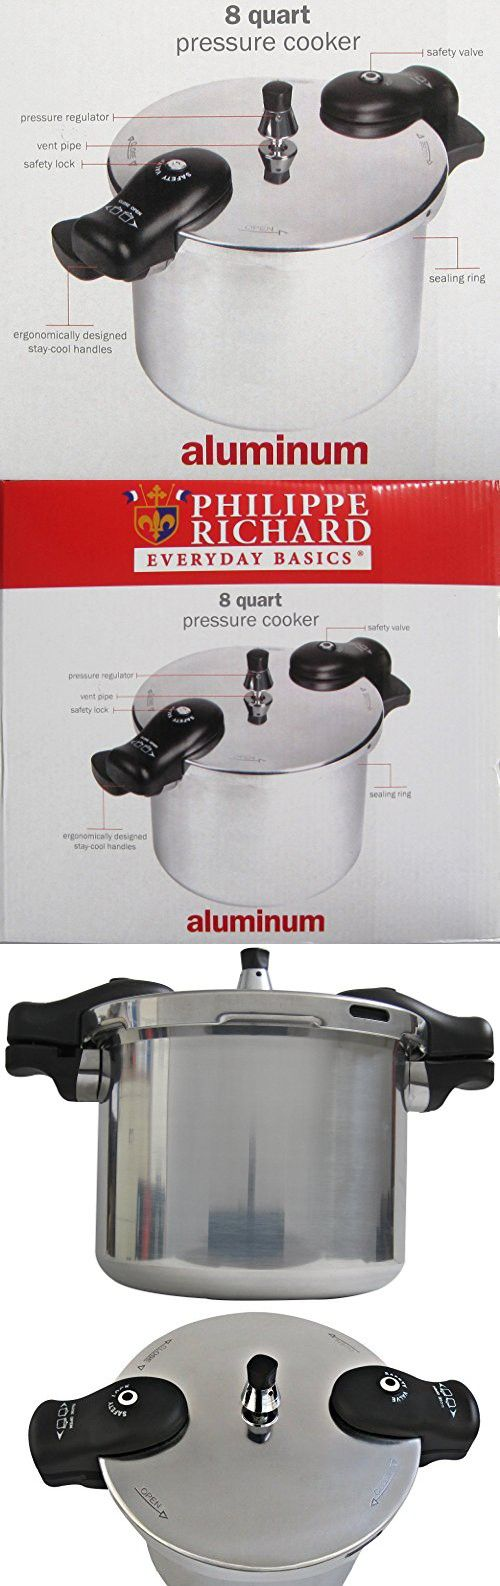 Buy fagor duo 8 quart pressure cooker from bed bath amp beyond - Philippe Richard 8 Quart Pressure Cooker Aluminum The Easy Healthy Aromatic And Versatile Resort